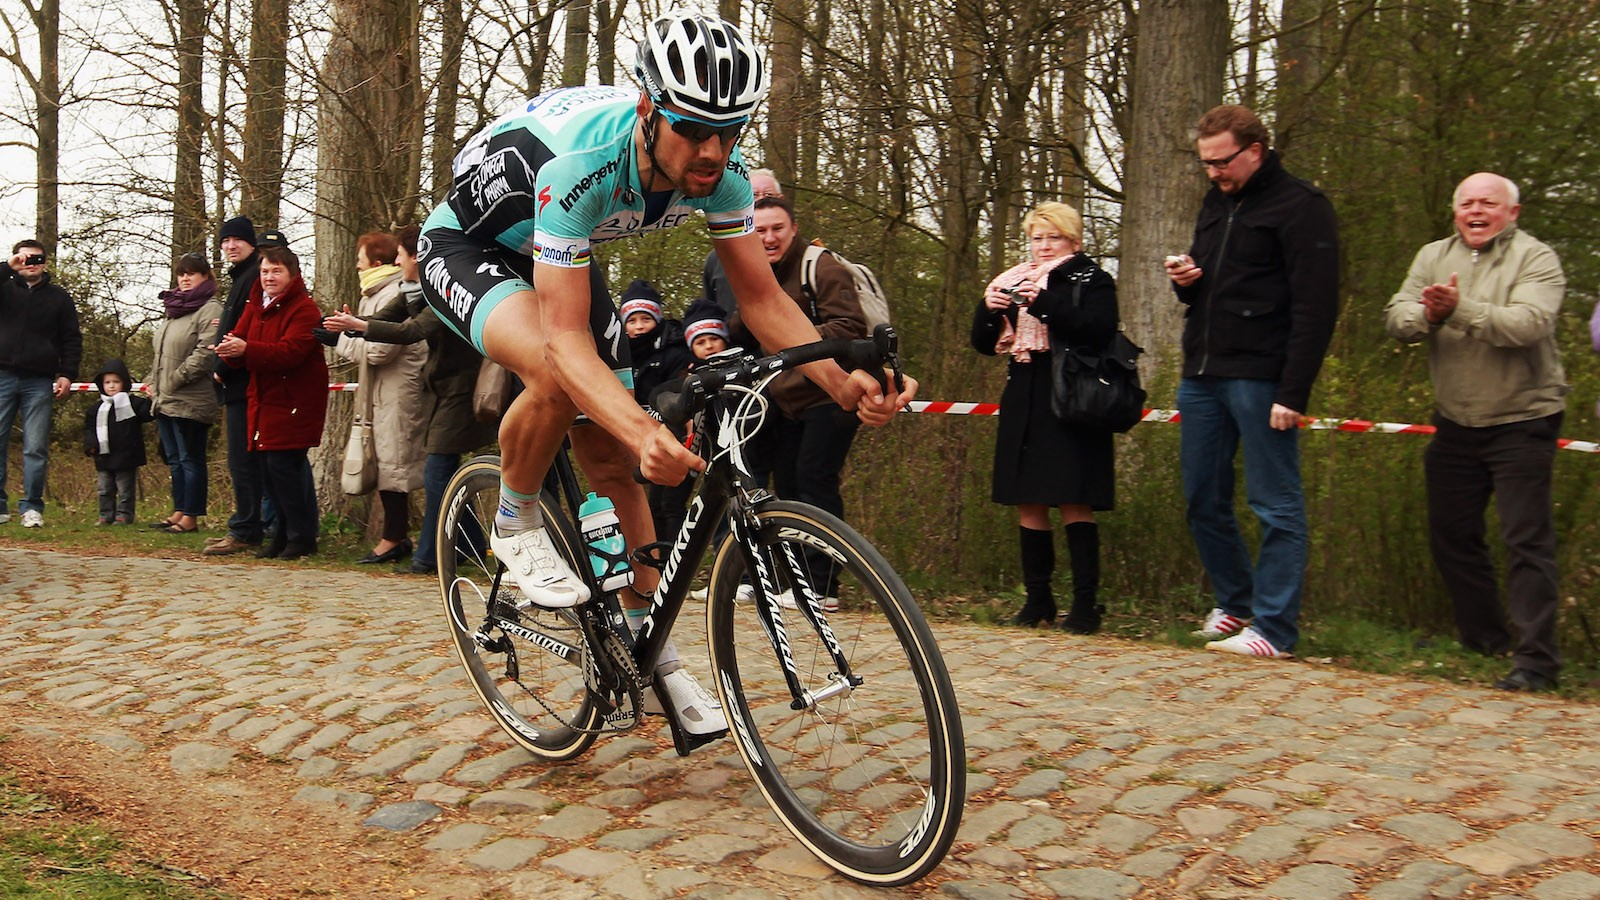 Cruise over the cobbles